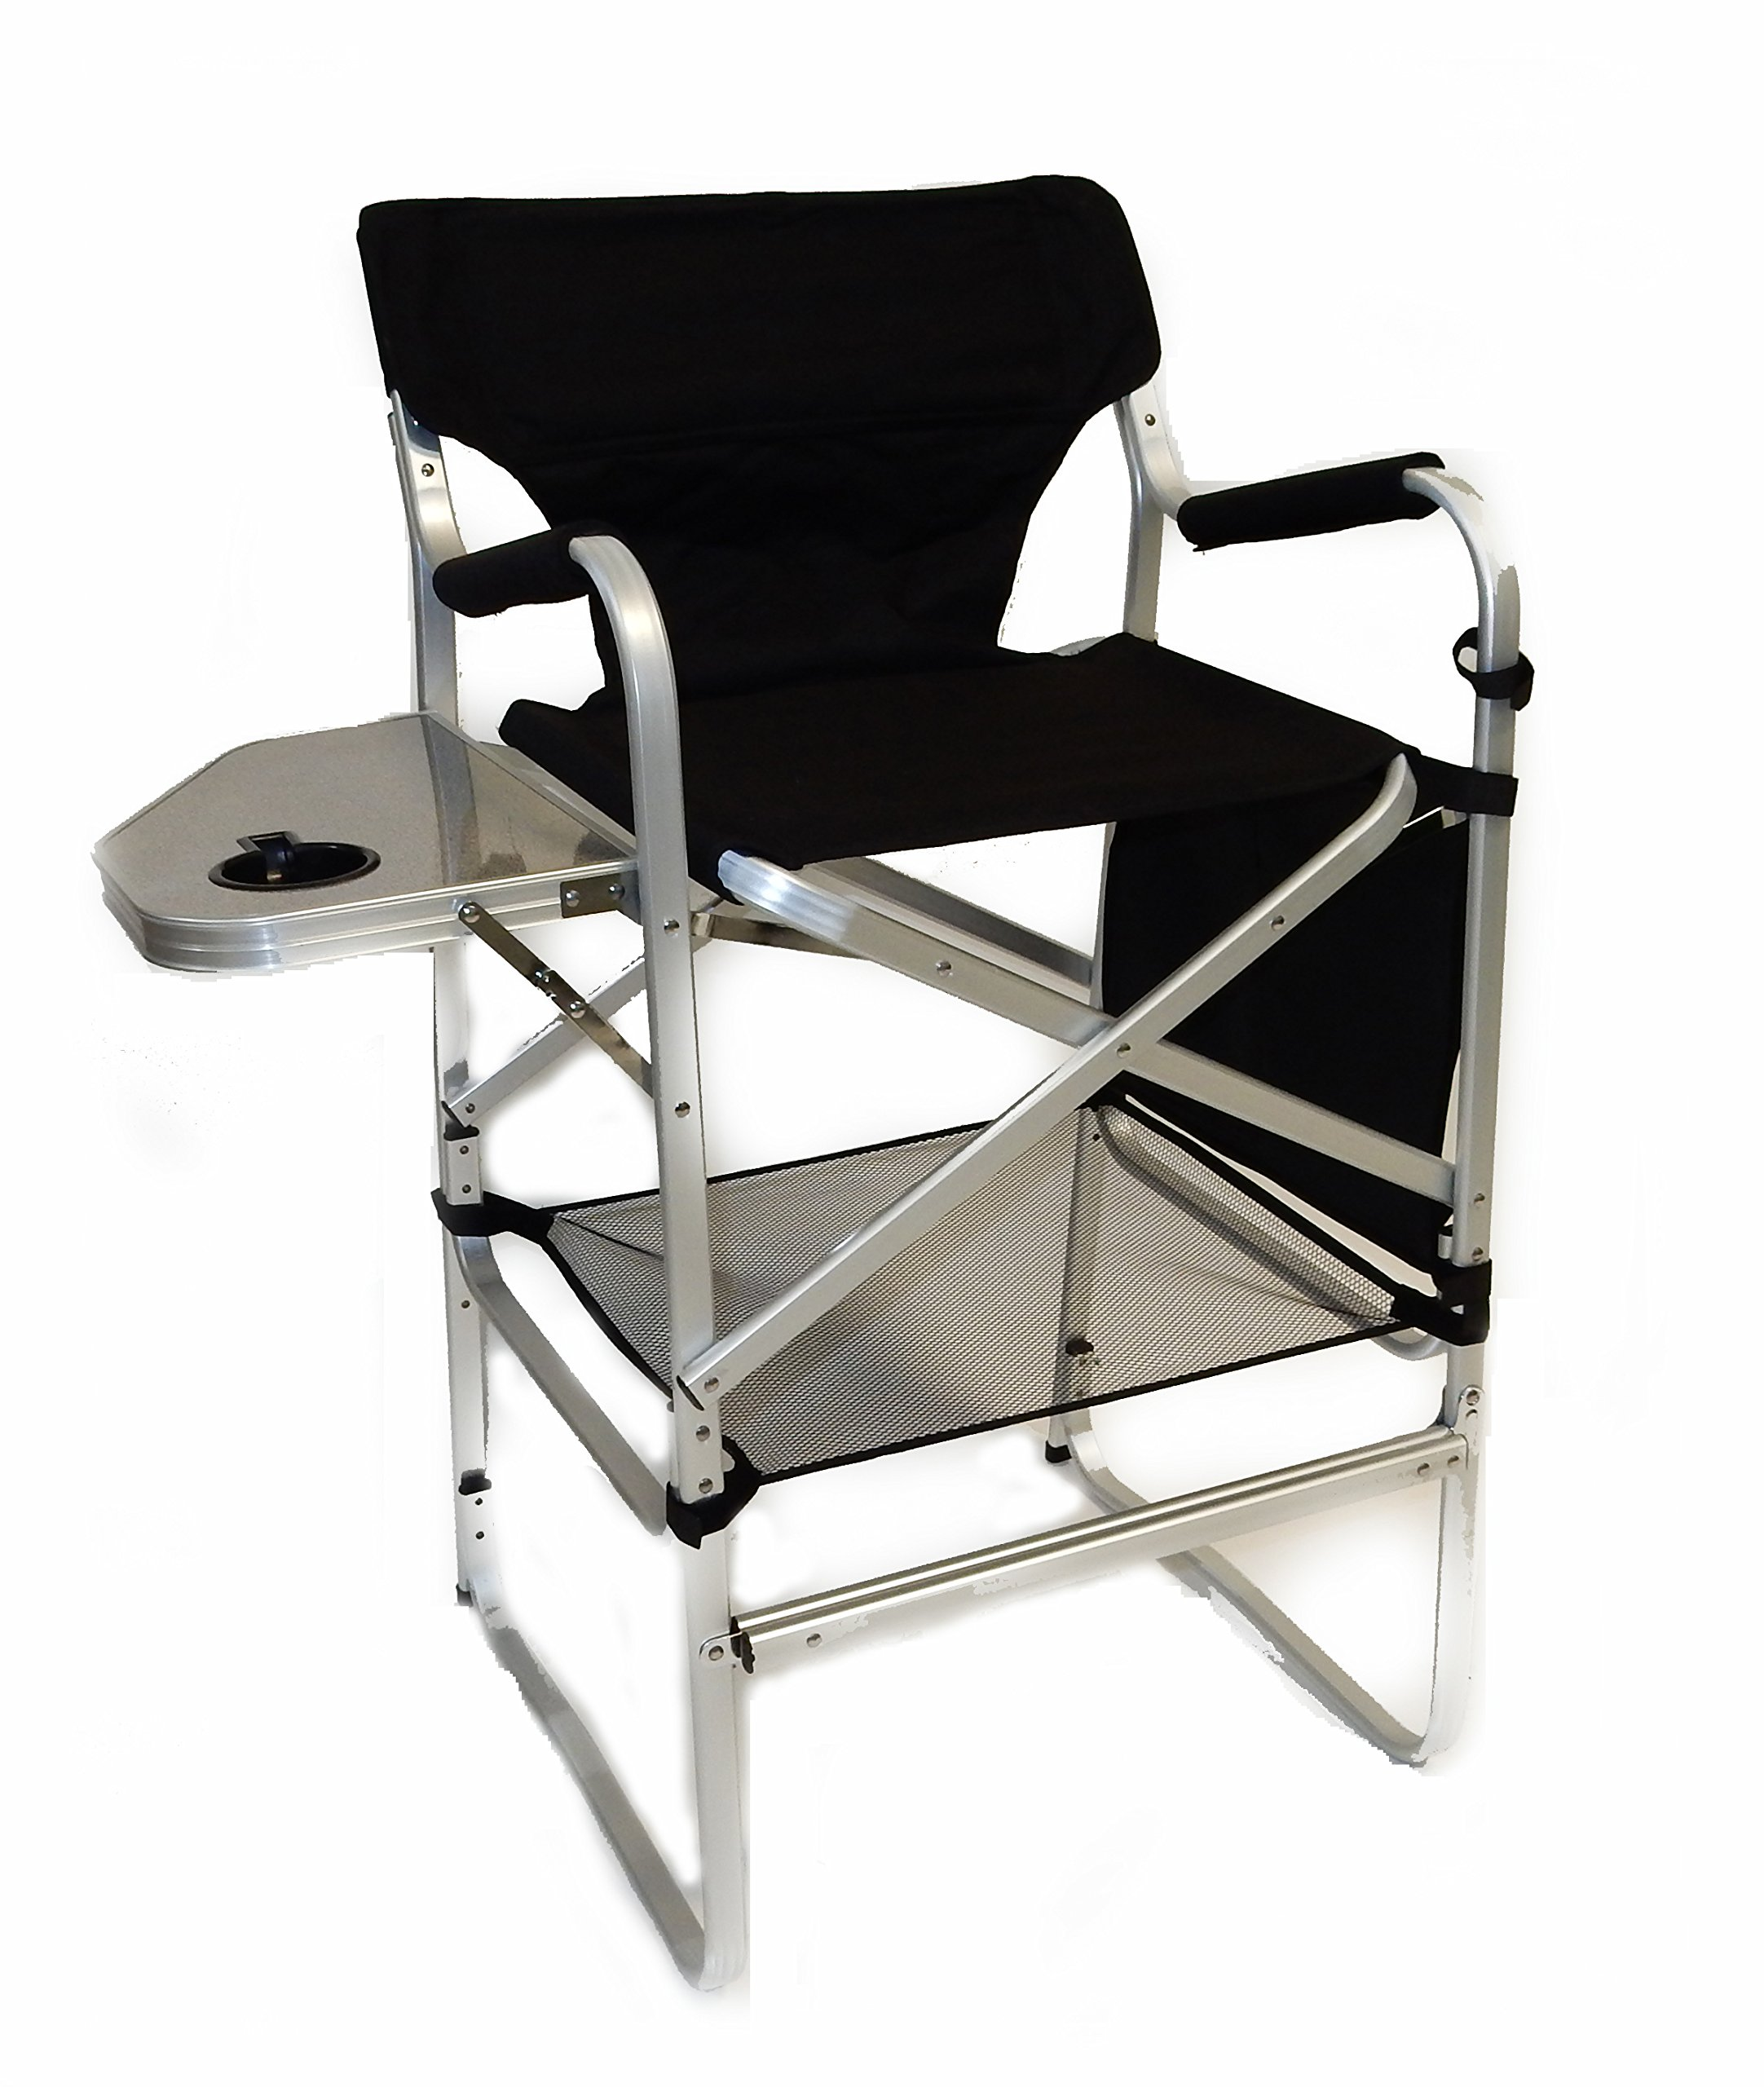 World Outdoor Products Lightweight PROFESSIONAL Tall Directors Chair with Side Table, CUSTOM ZIPPERED STORAGE CARRY BAG, Cup Holder, Footrest, Carry Handles, Side Storage Bag, Lower Level Storage Net. by World Outdoor Products (Image #2)